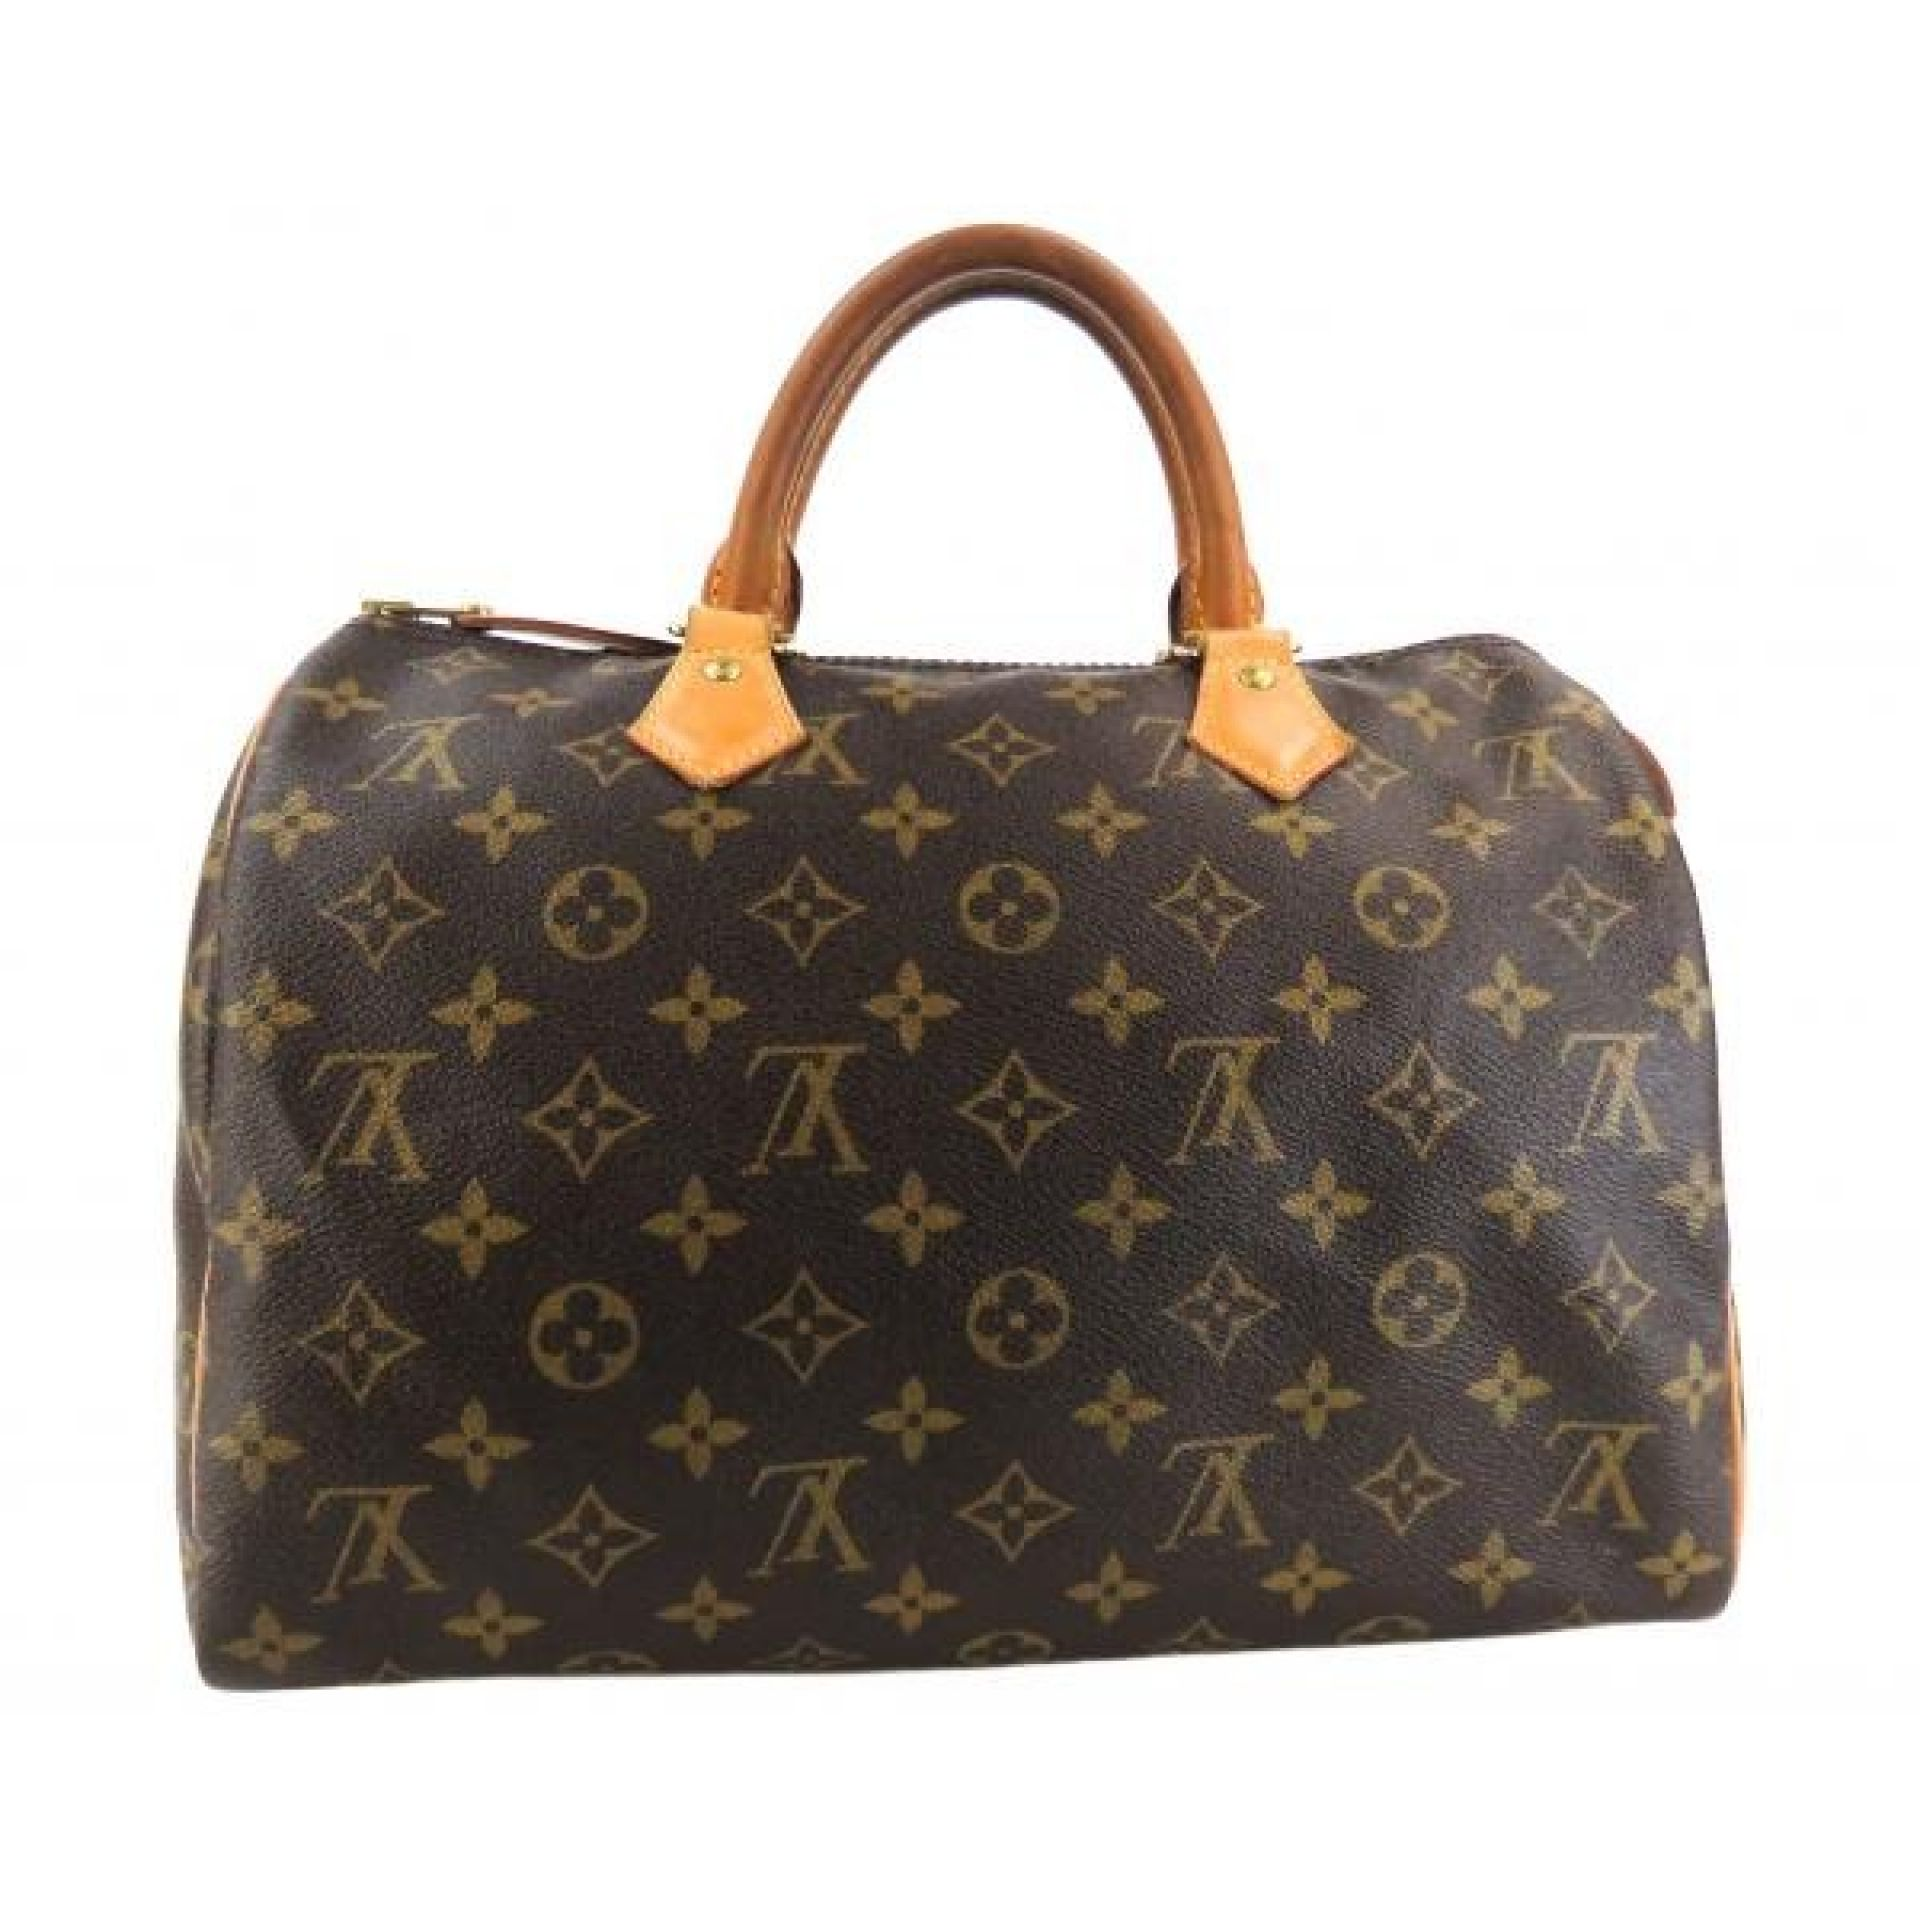 Louis Vuitton Brown Monogram Canvas Speedy 30 Satchel Bag